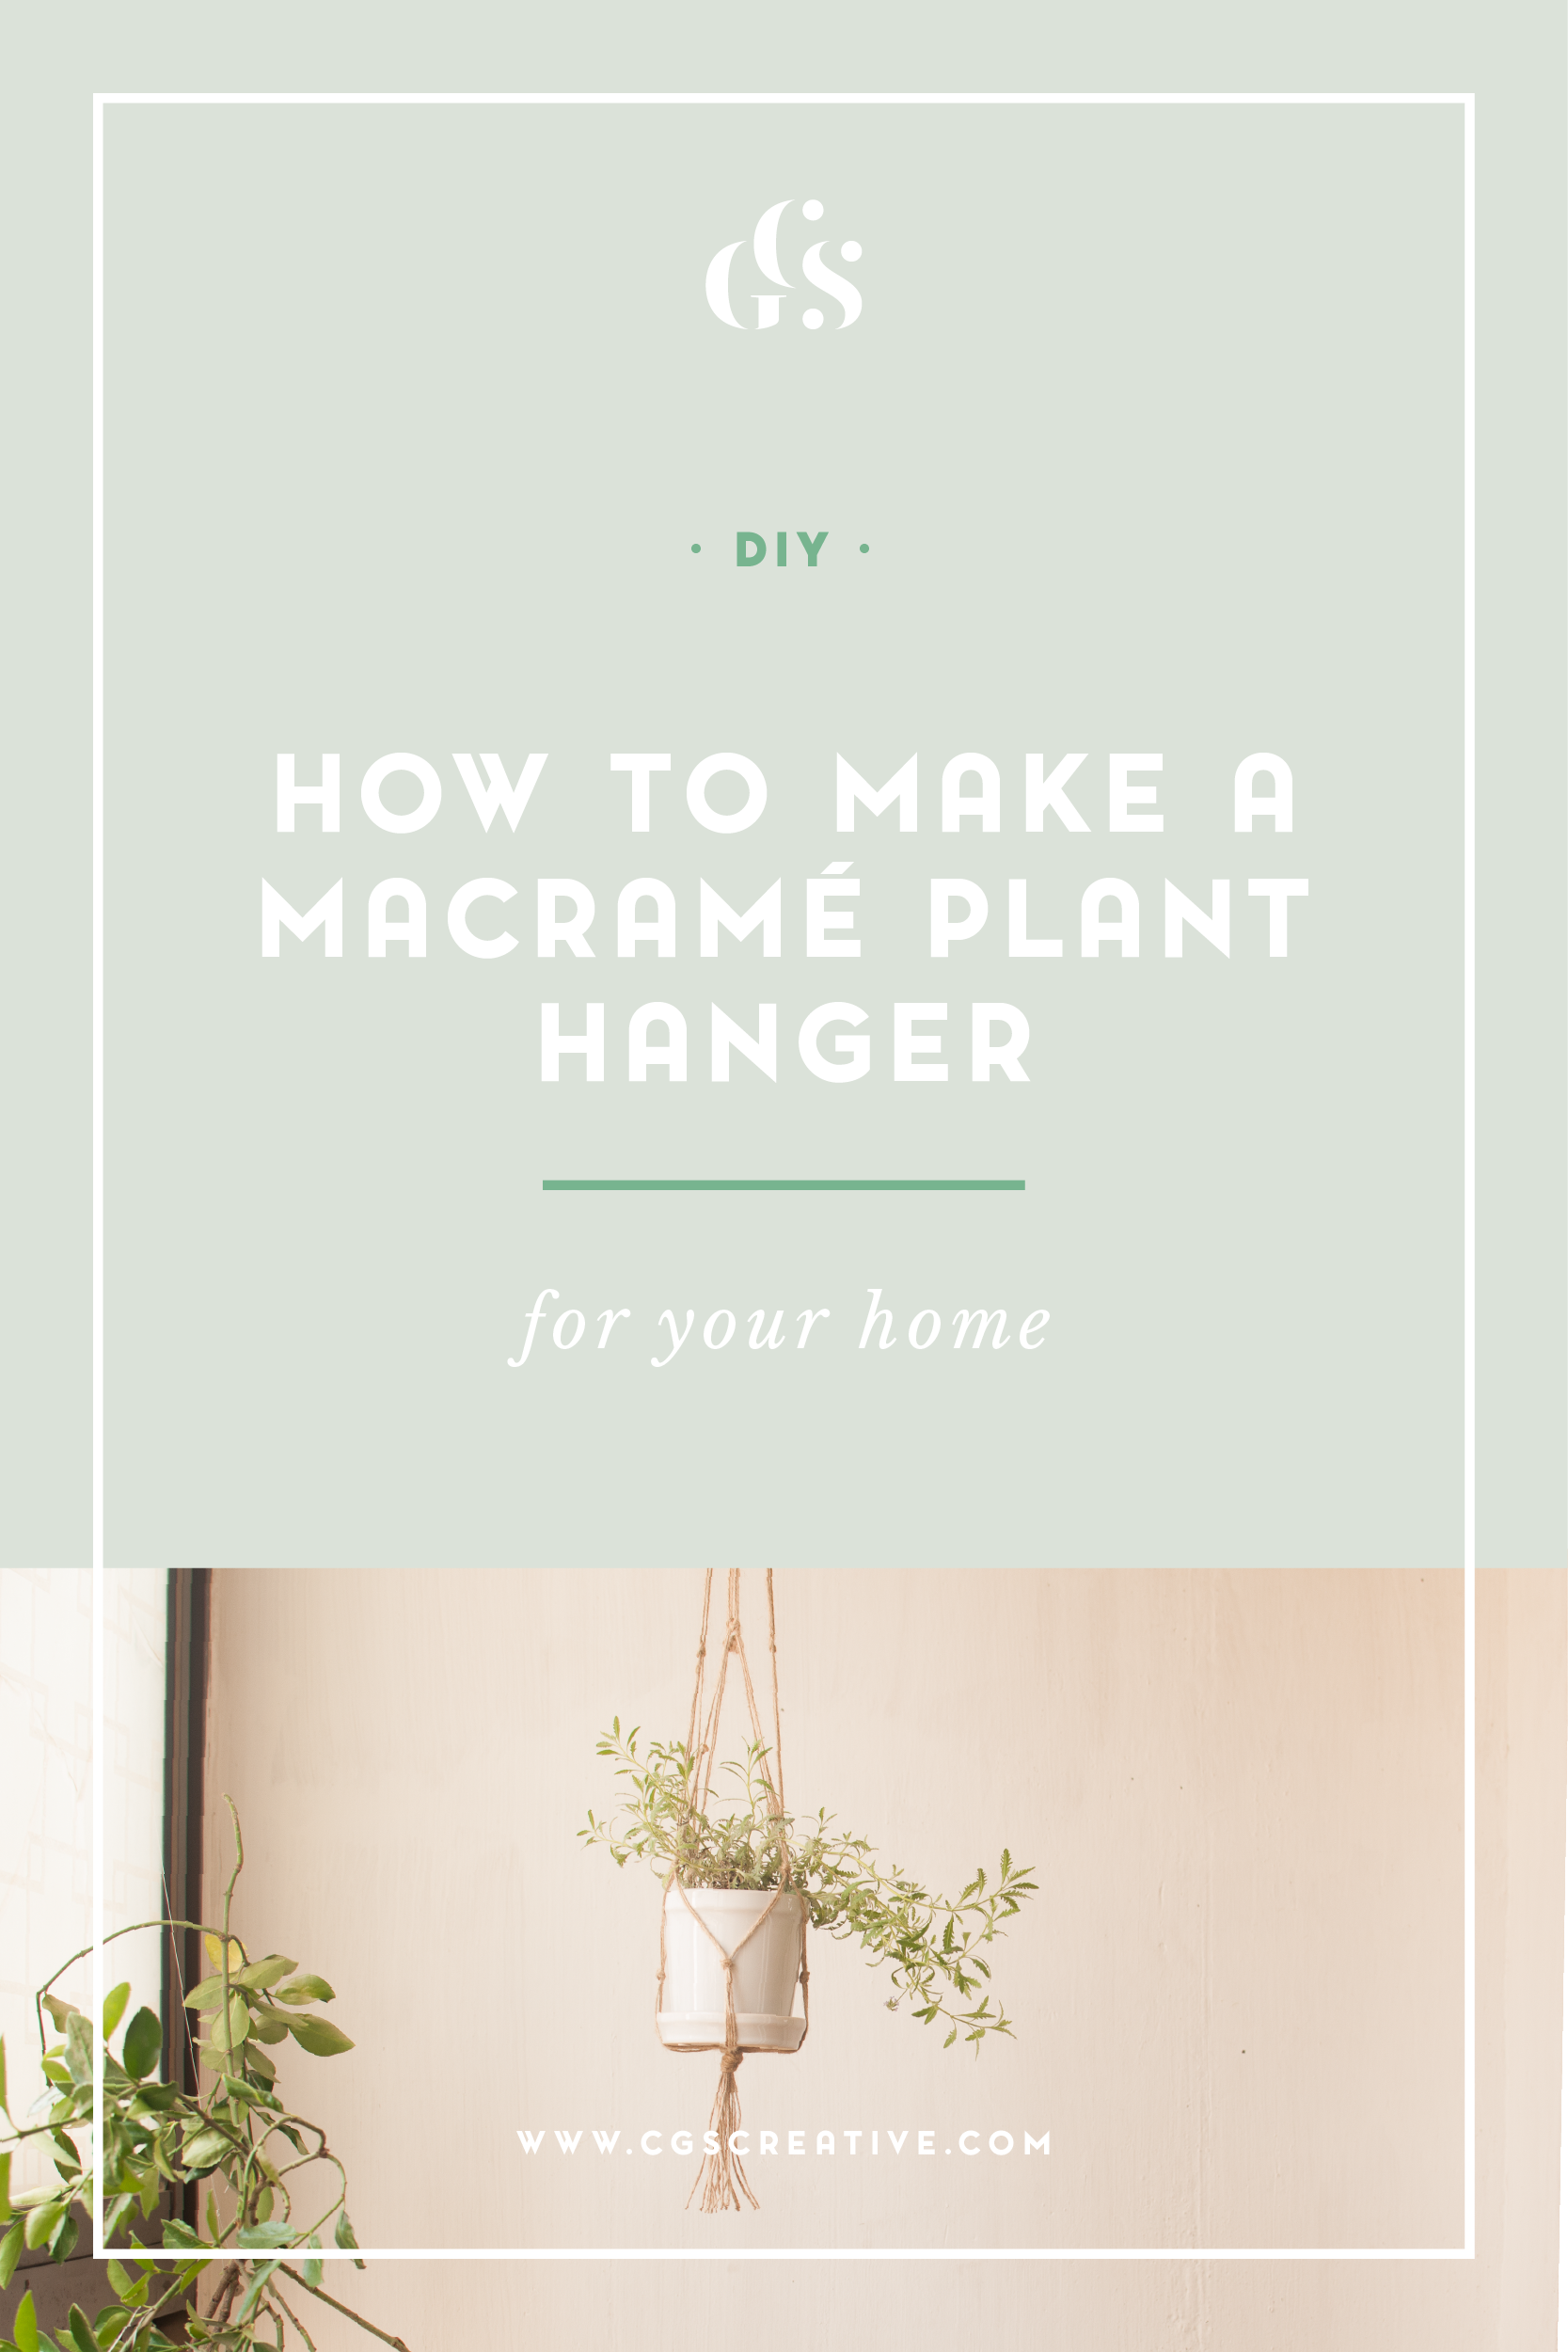 CityGirlSearching How To Make A Macrame Plant Holder DIY